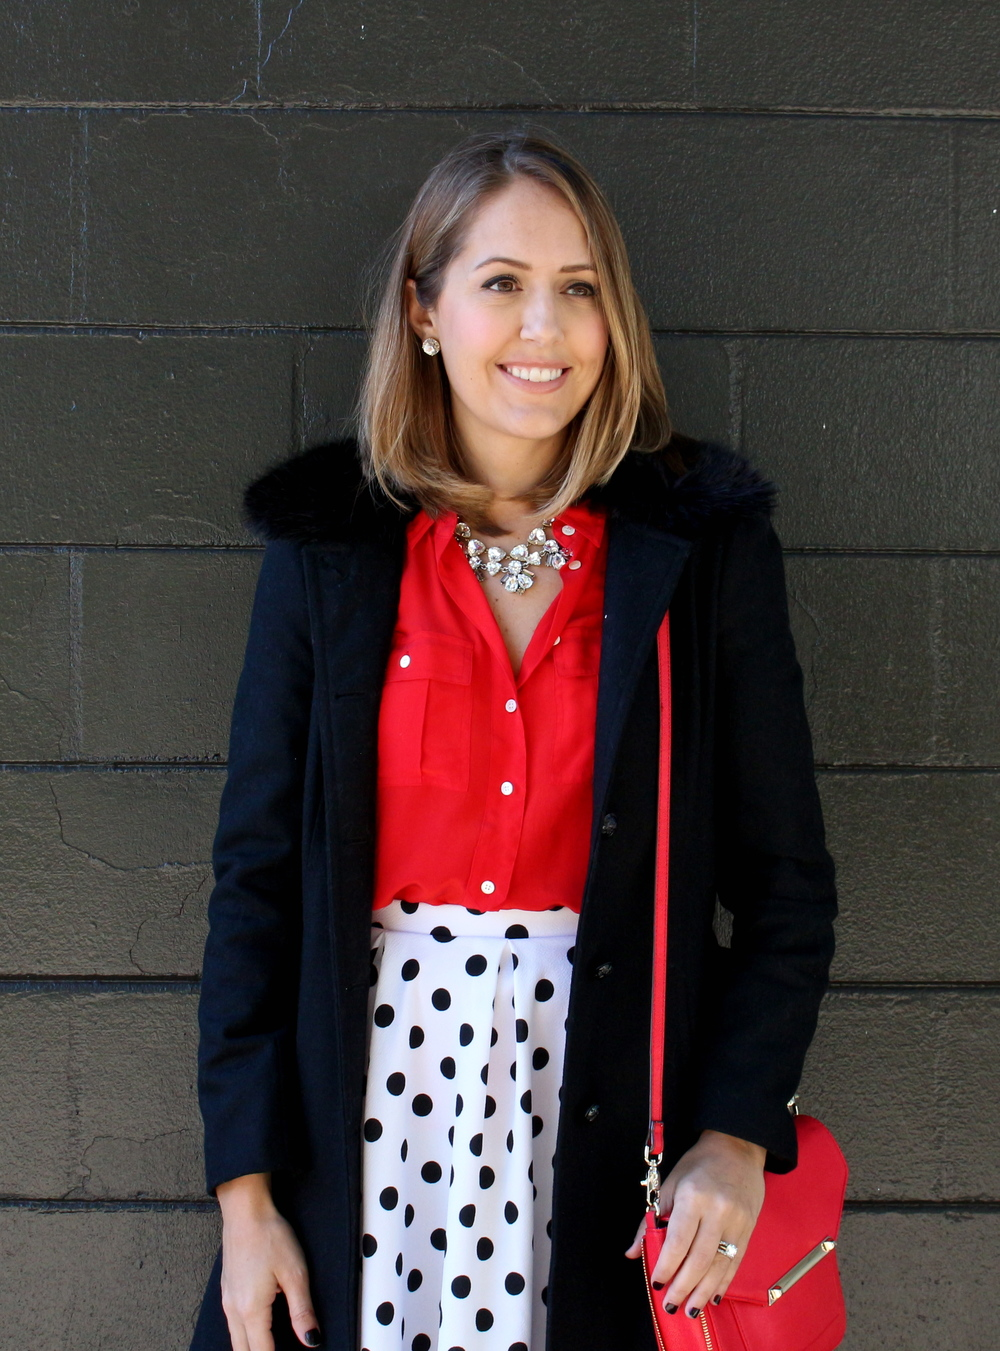 Polka dot skirt, red shirt, black wool coat